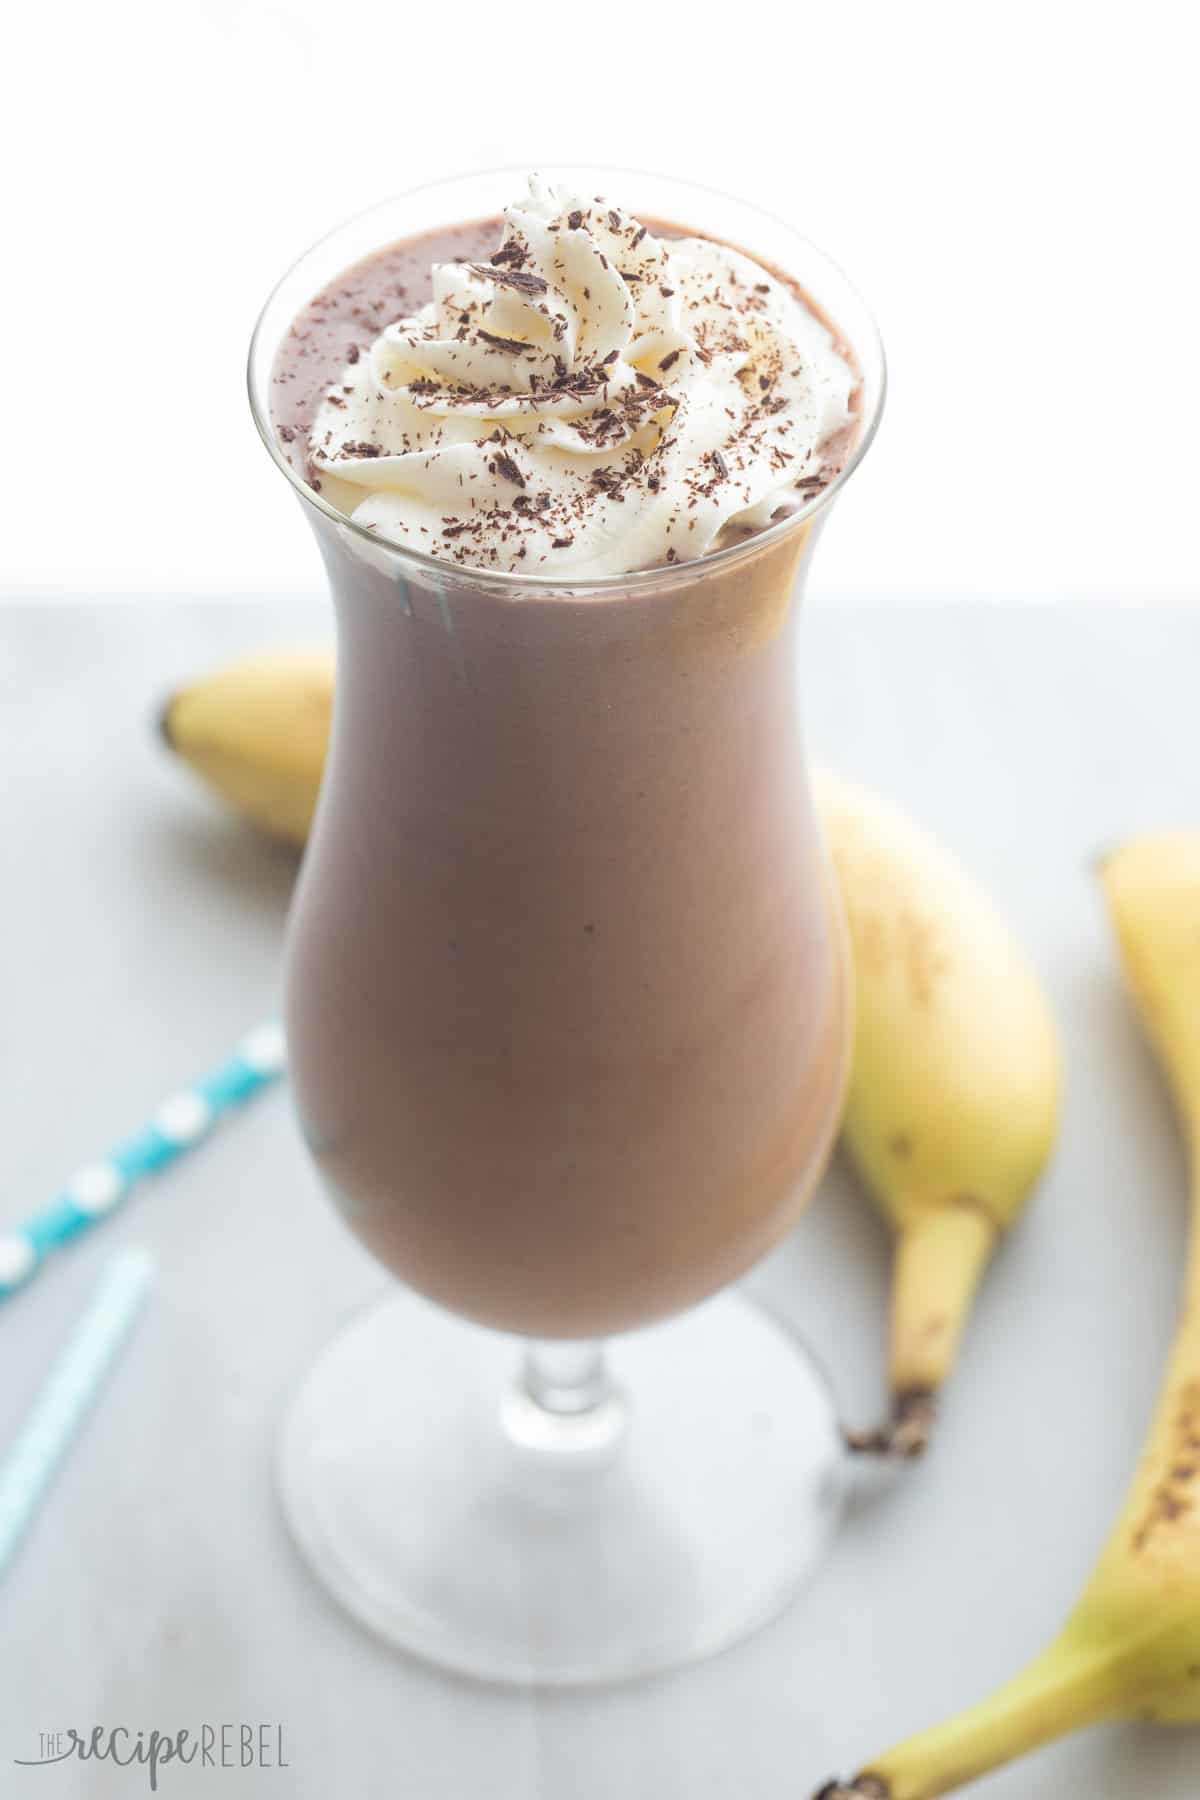 Healthy Chocolate Peanut Butter Smoothie - The Recipe Rebel